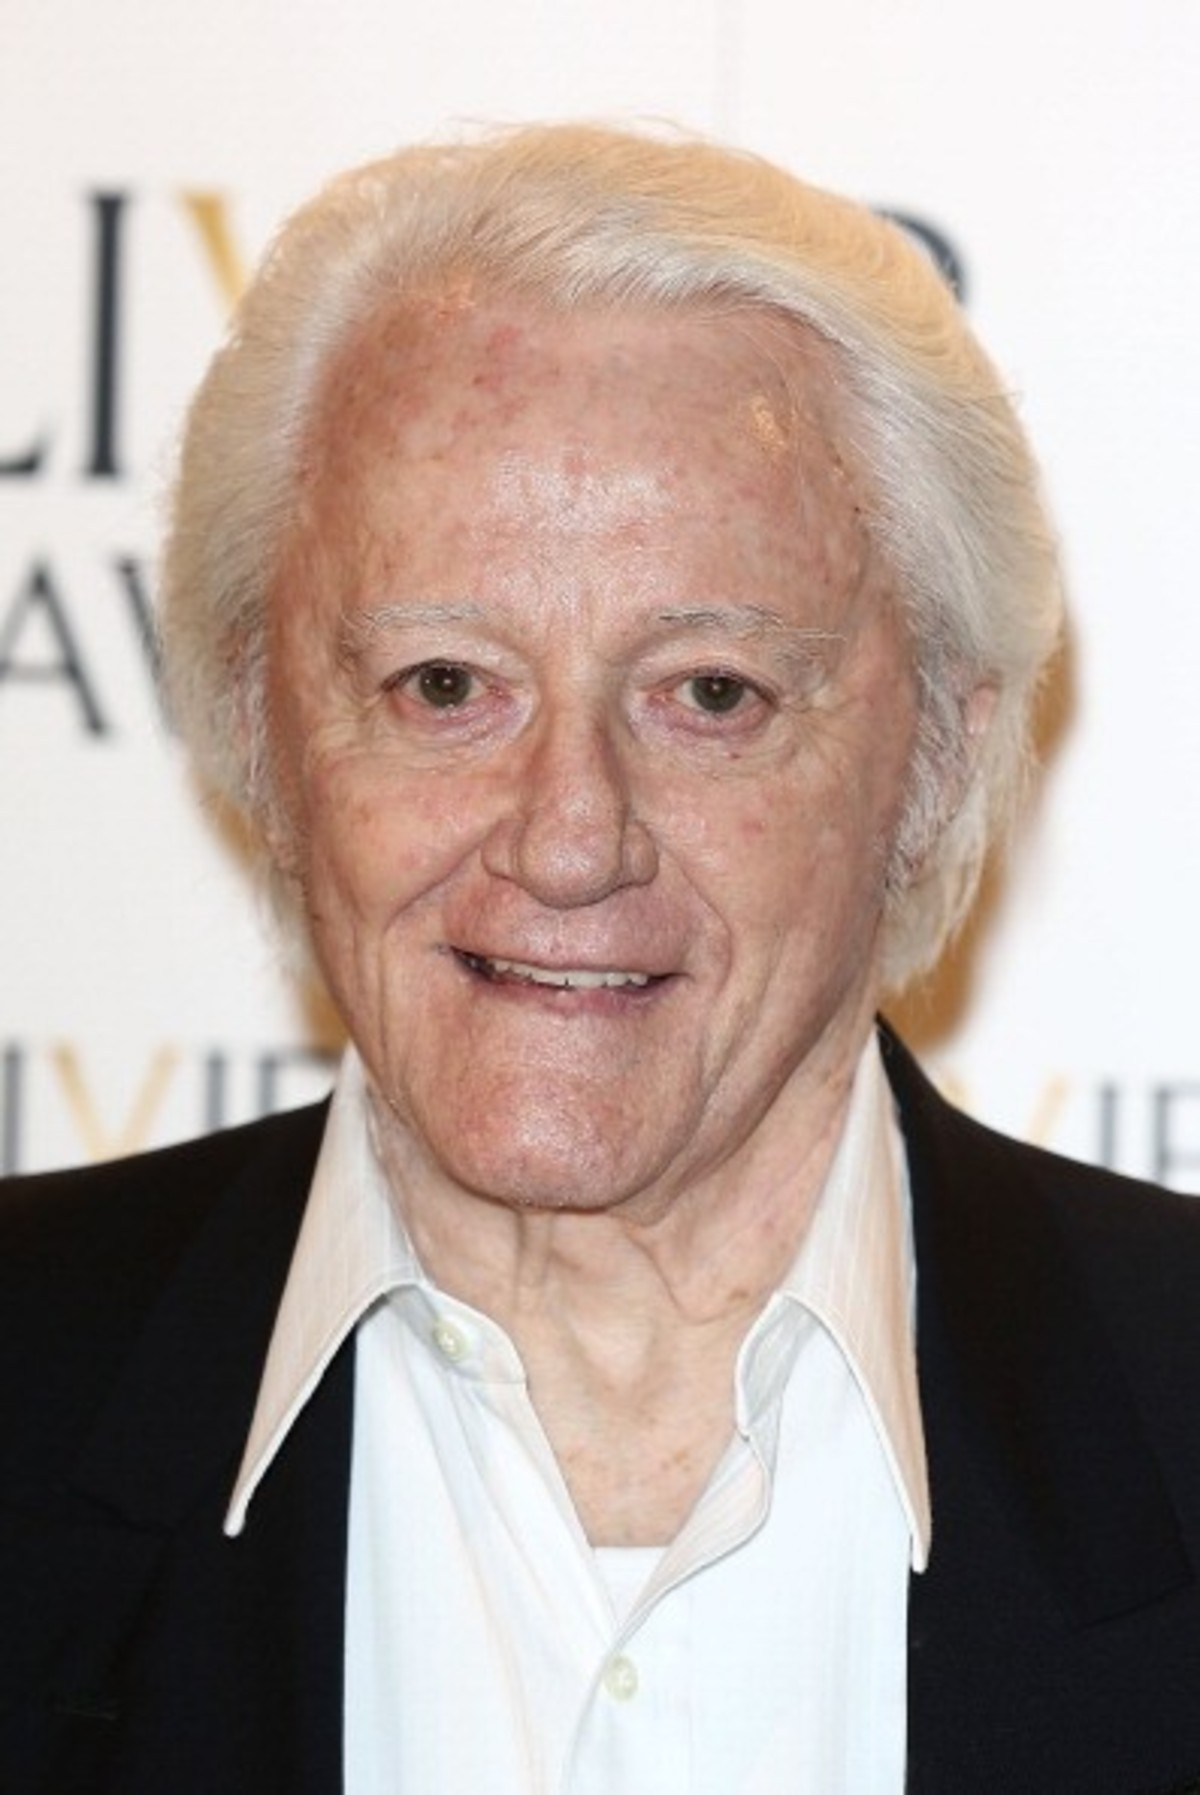 How tall is Robert Vaughn?